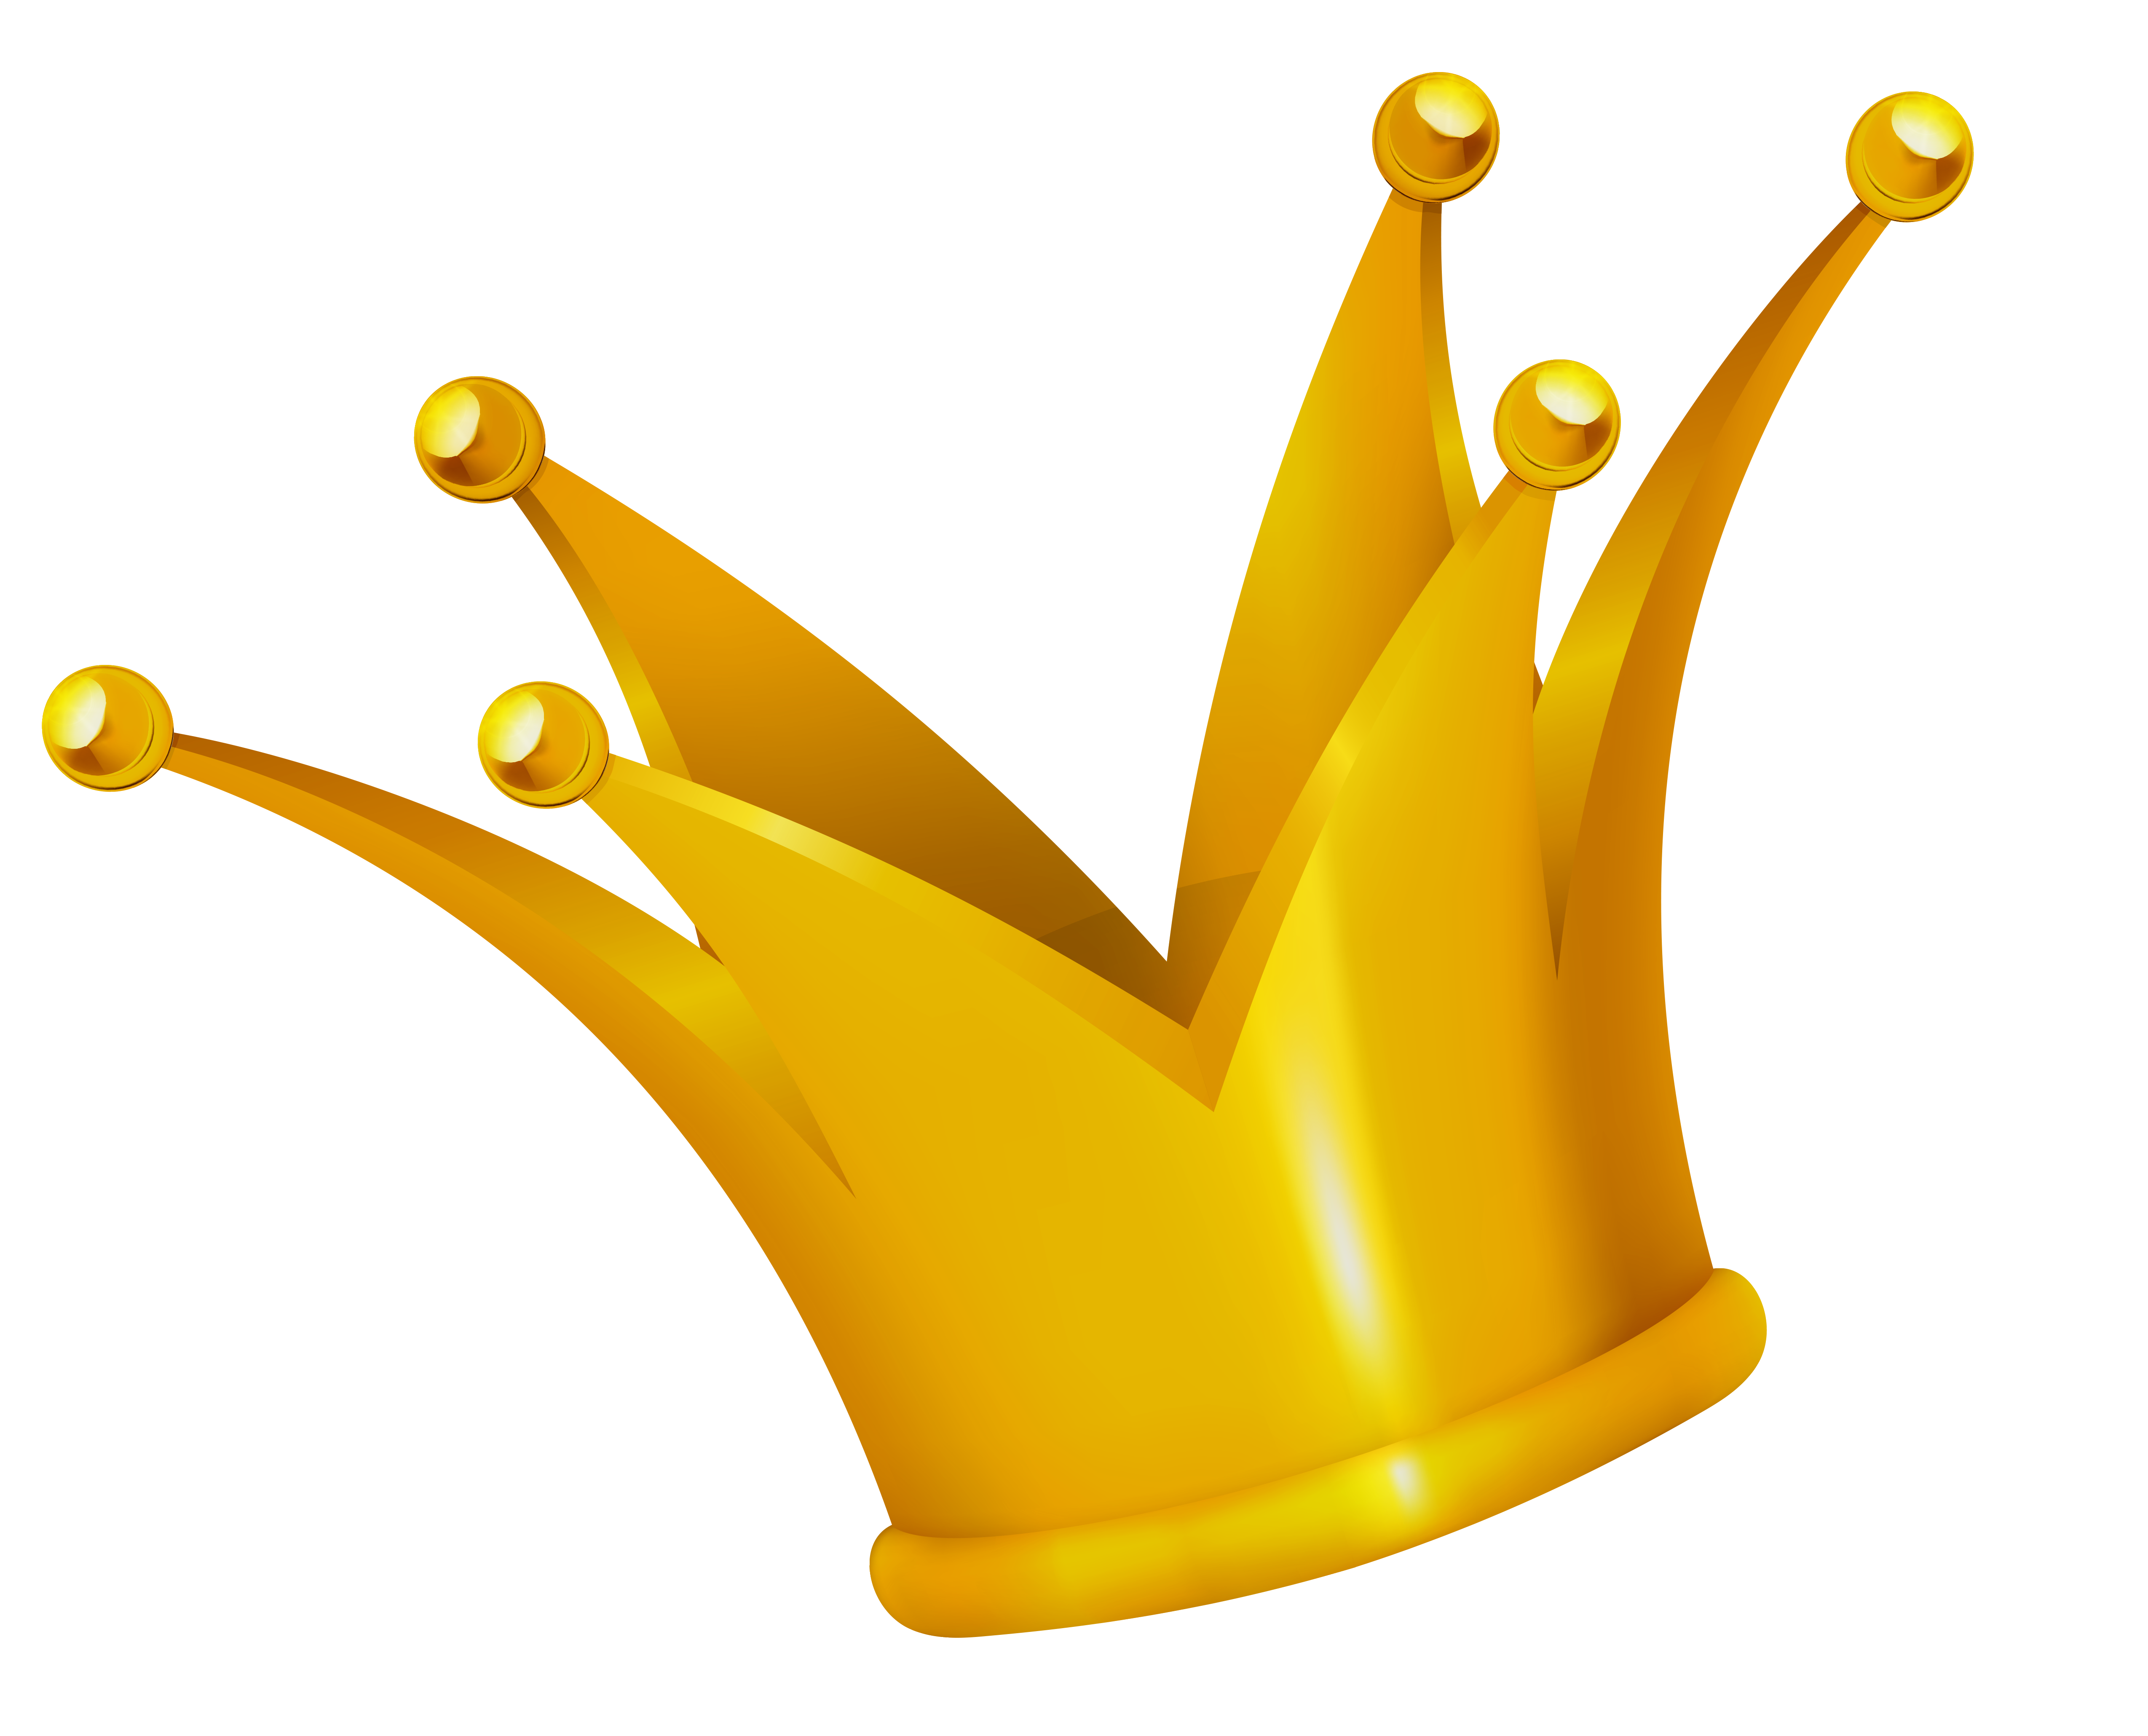 Yellow crown clipart vector royalty free download Gold crown clipart no background - ClipartFest vector royalty free download